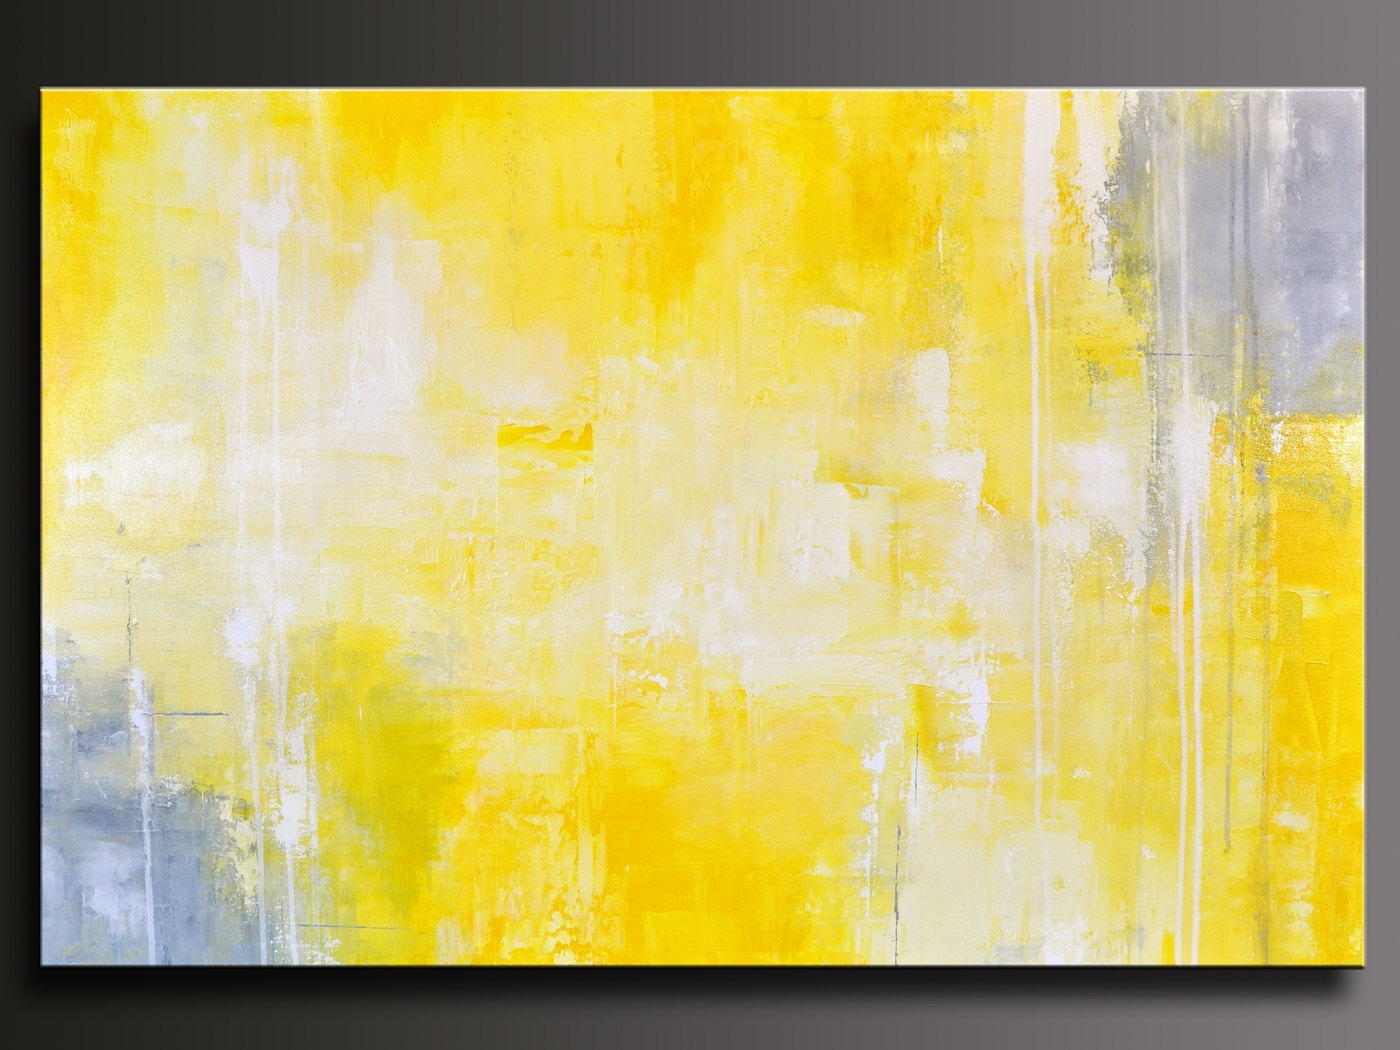 Yellow And Gray Wall Art with Preferred Diy Yellow And Gray Wall Cool Yellow And Gray Wall Decor - Wall